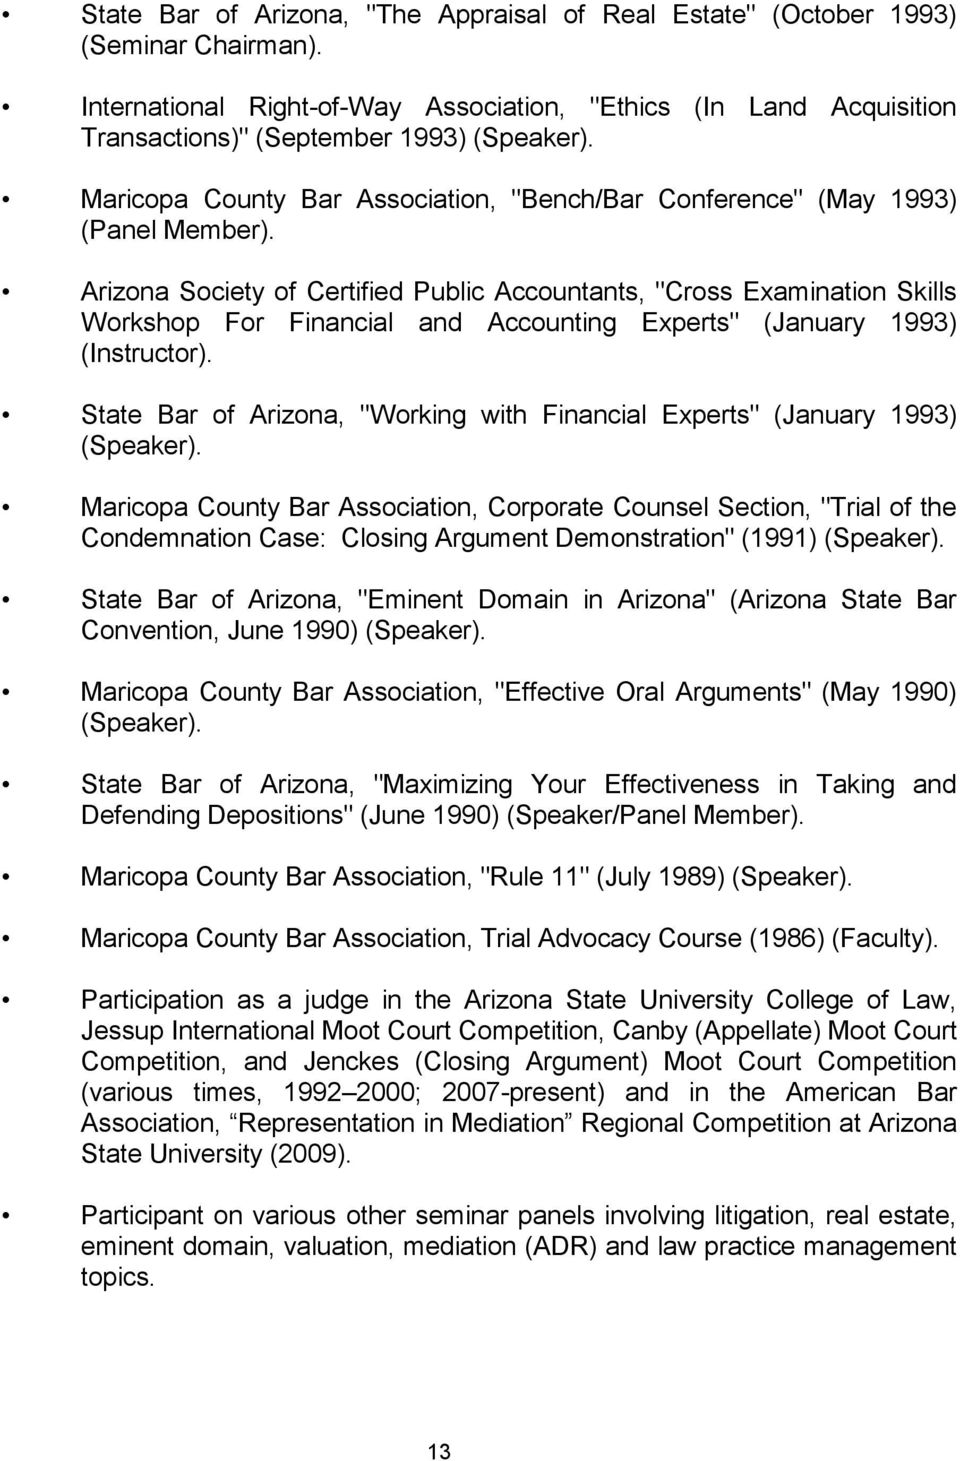 "Arizona Society of Certified Public Accountants, ""Cross Examination Skills Workshop For Financial and Accounting Experts"" (January 1993) (Instructor)."